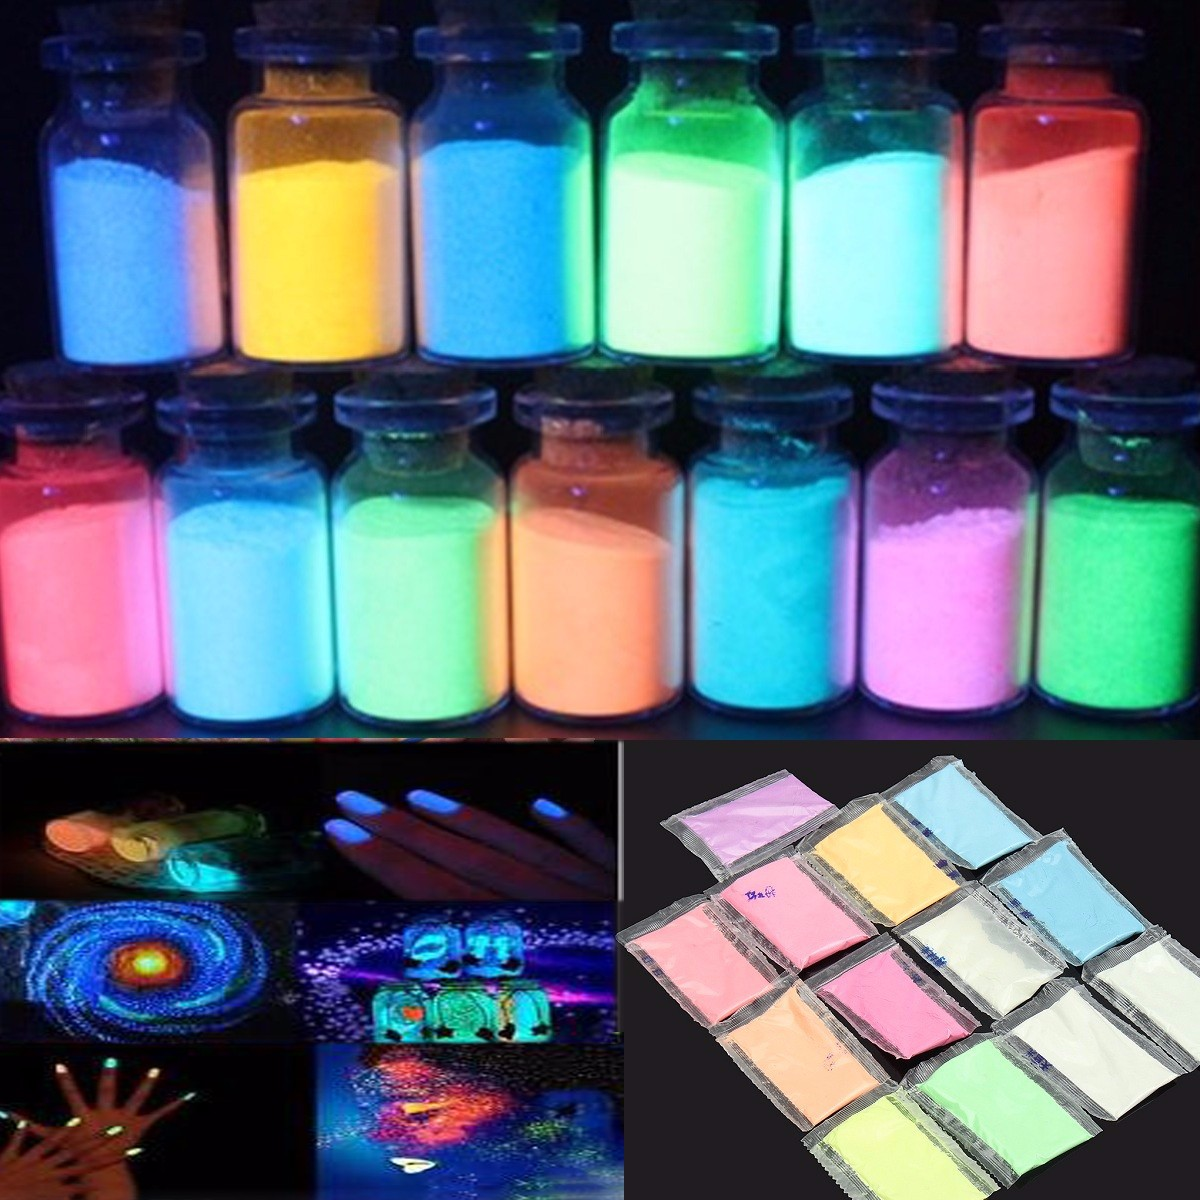 13package/set Phosphor Luminous Powder For Party DIY Decoration Paint Print Random Colors Night Coating